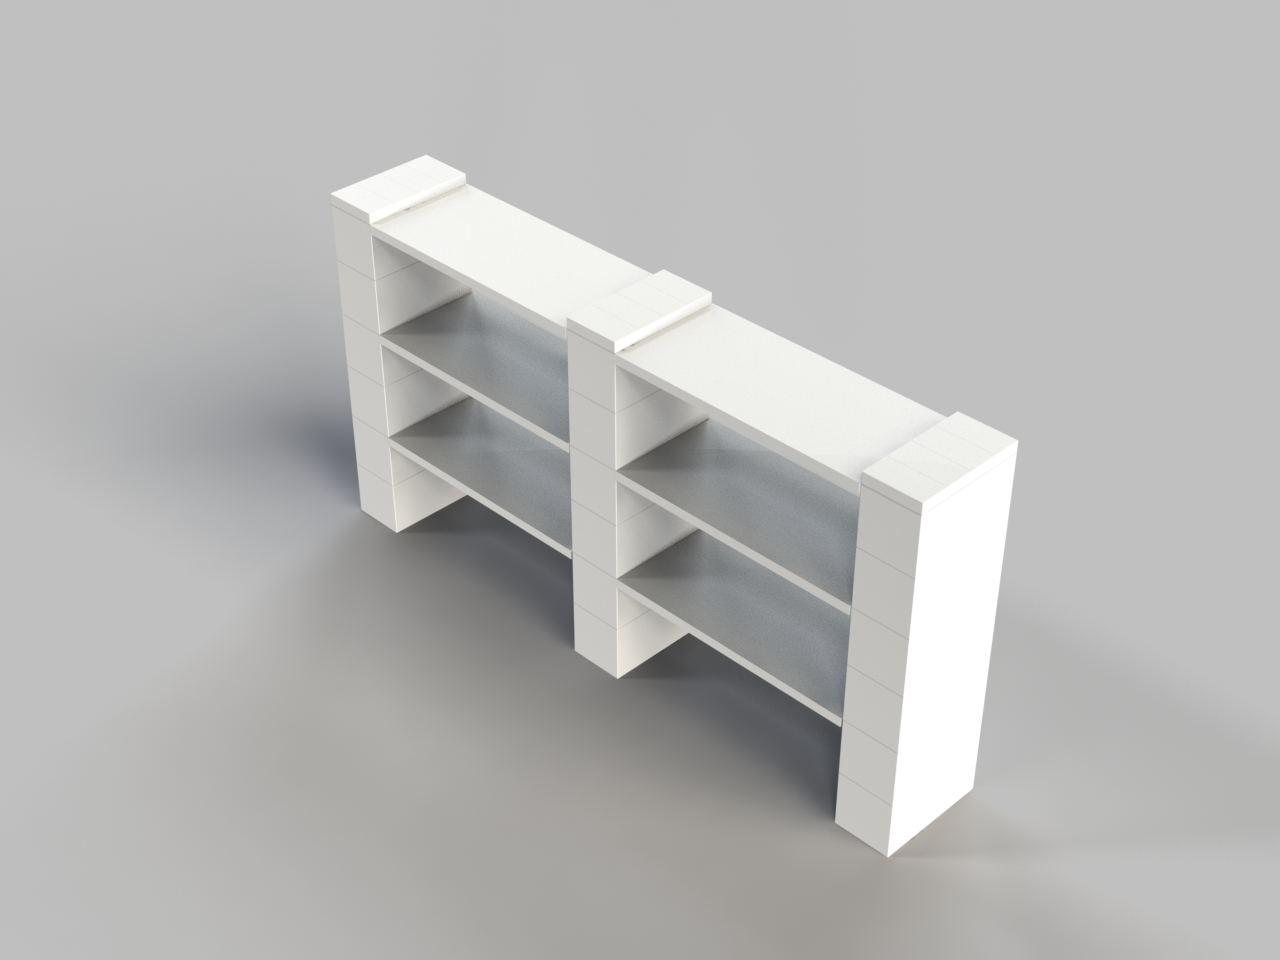 3 Level Double Shelf